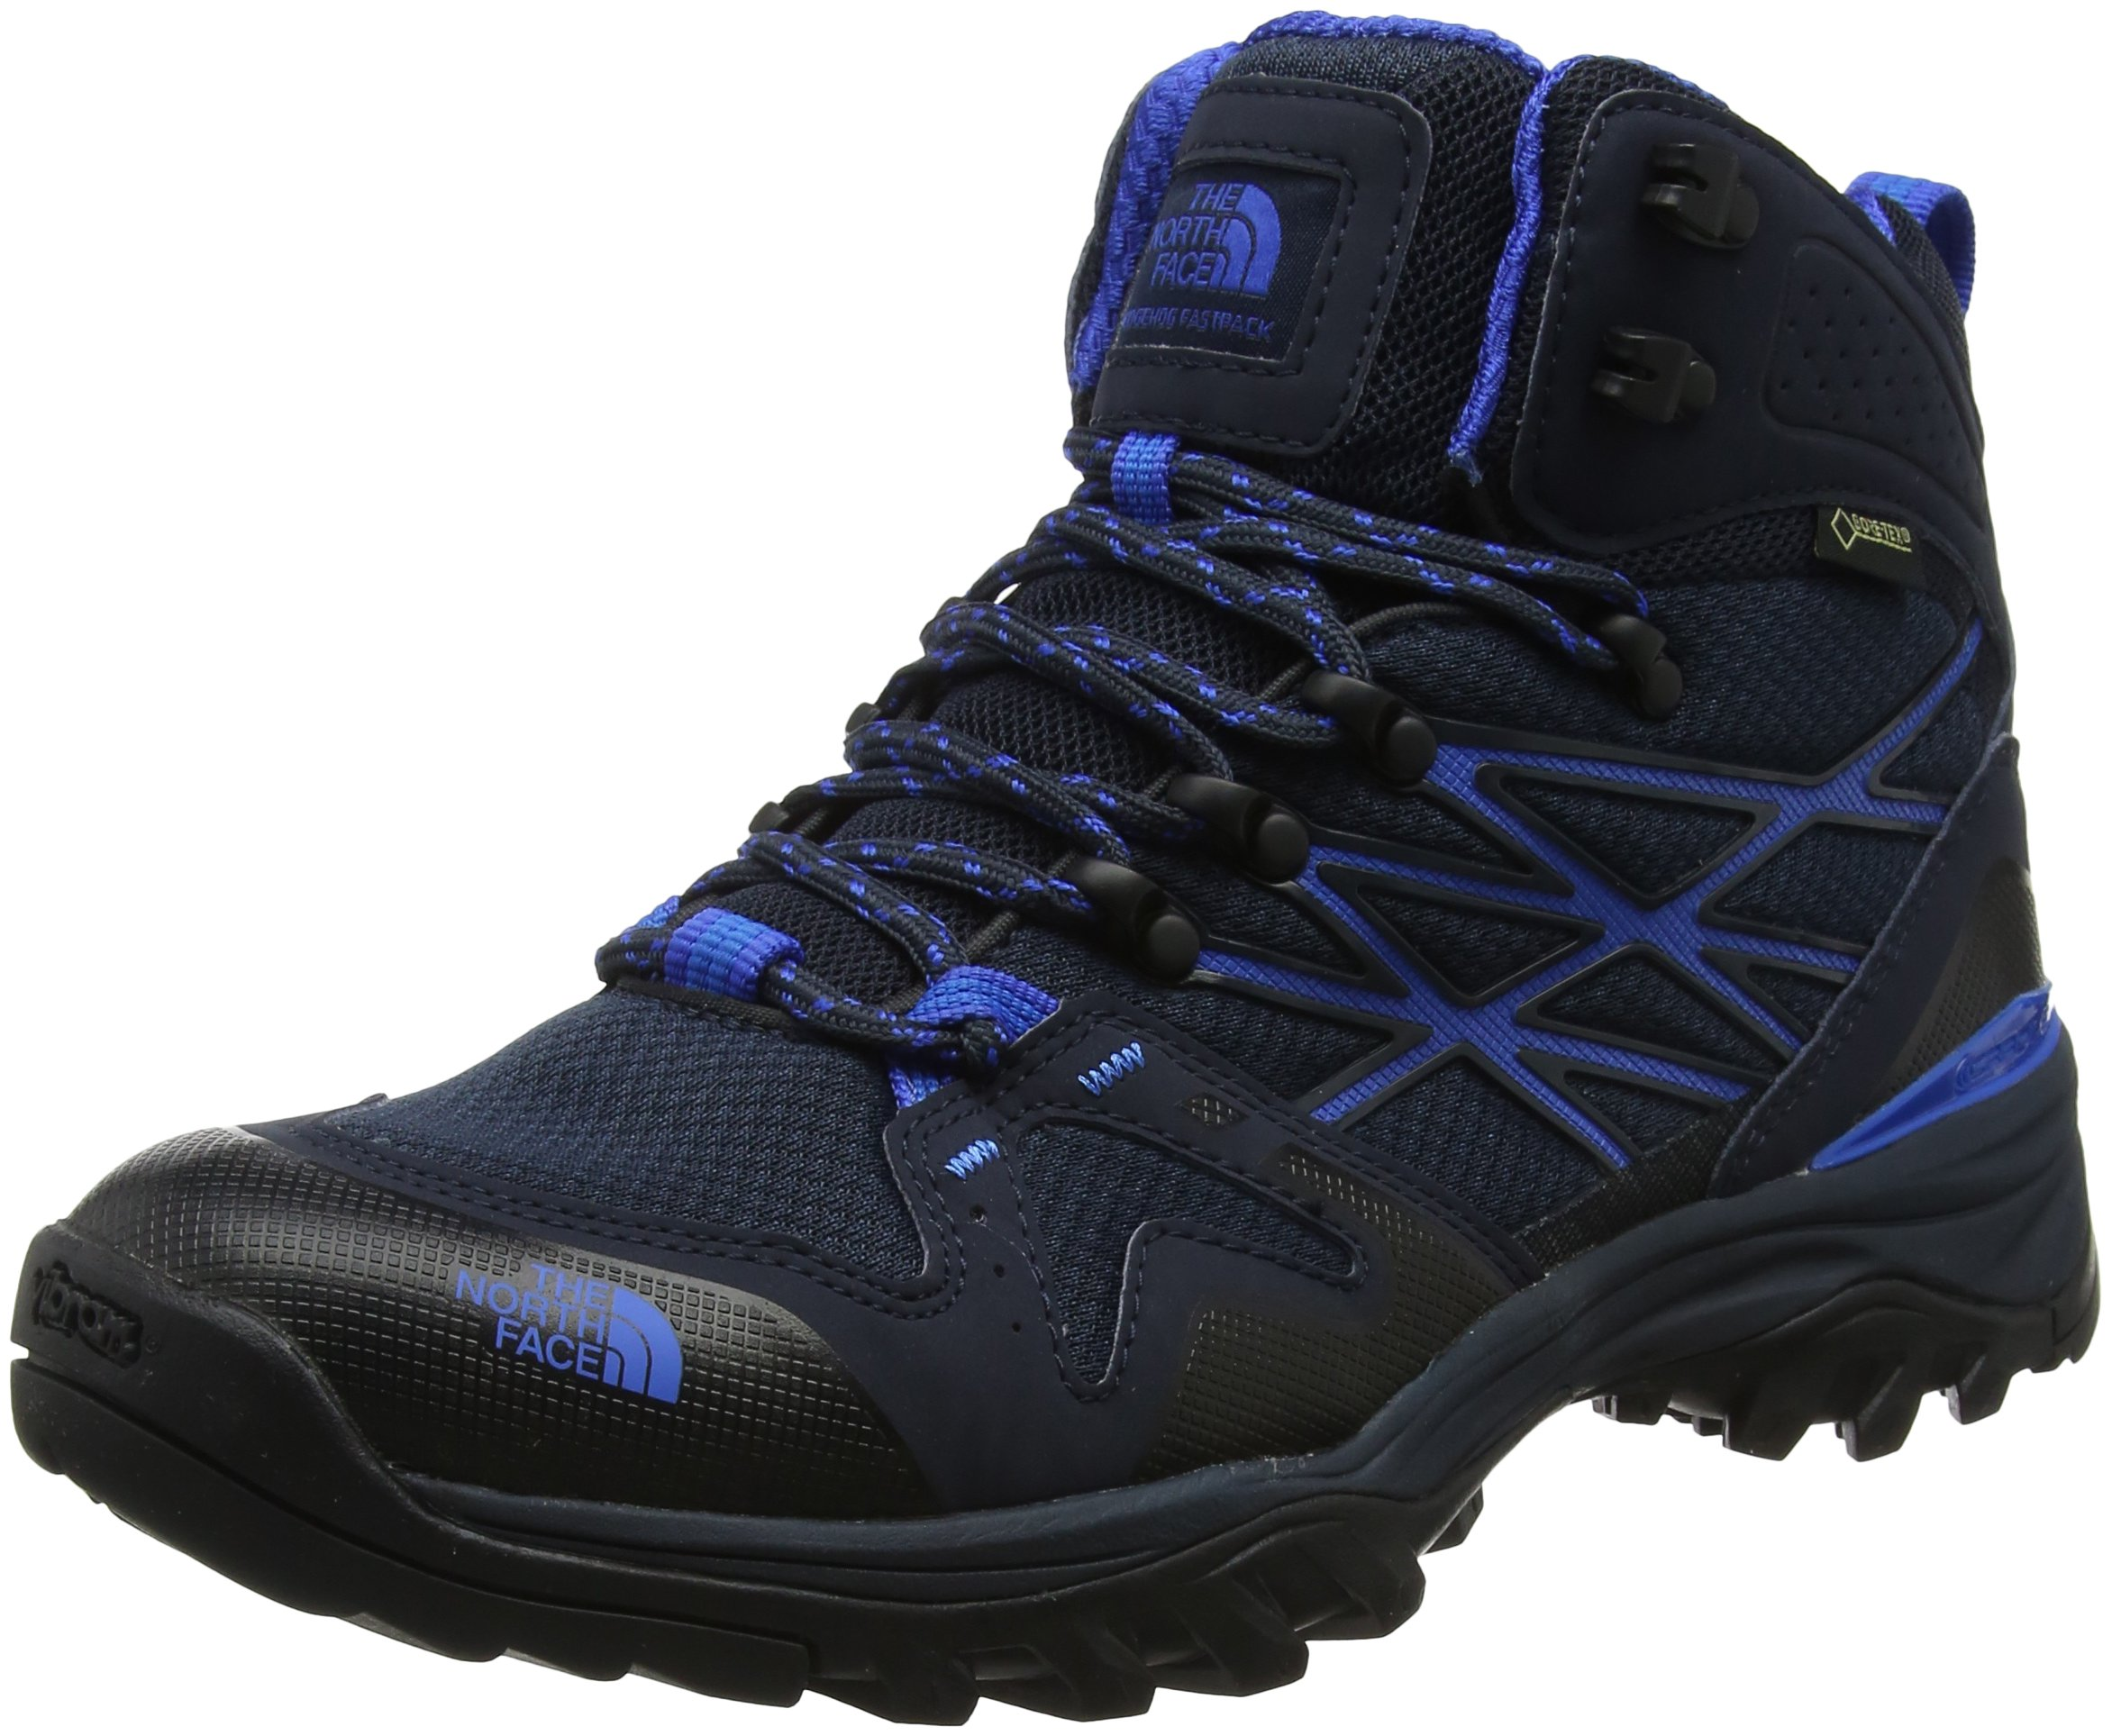 81pYpiwvNgL - THE NORTH FACE Men's Hedgehog Fastpack Mid Gtx High Rise Hiking Boots